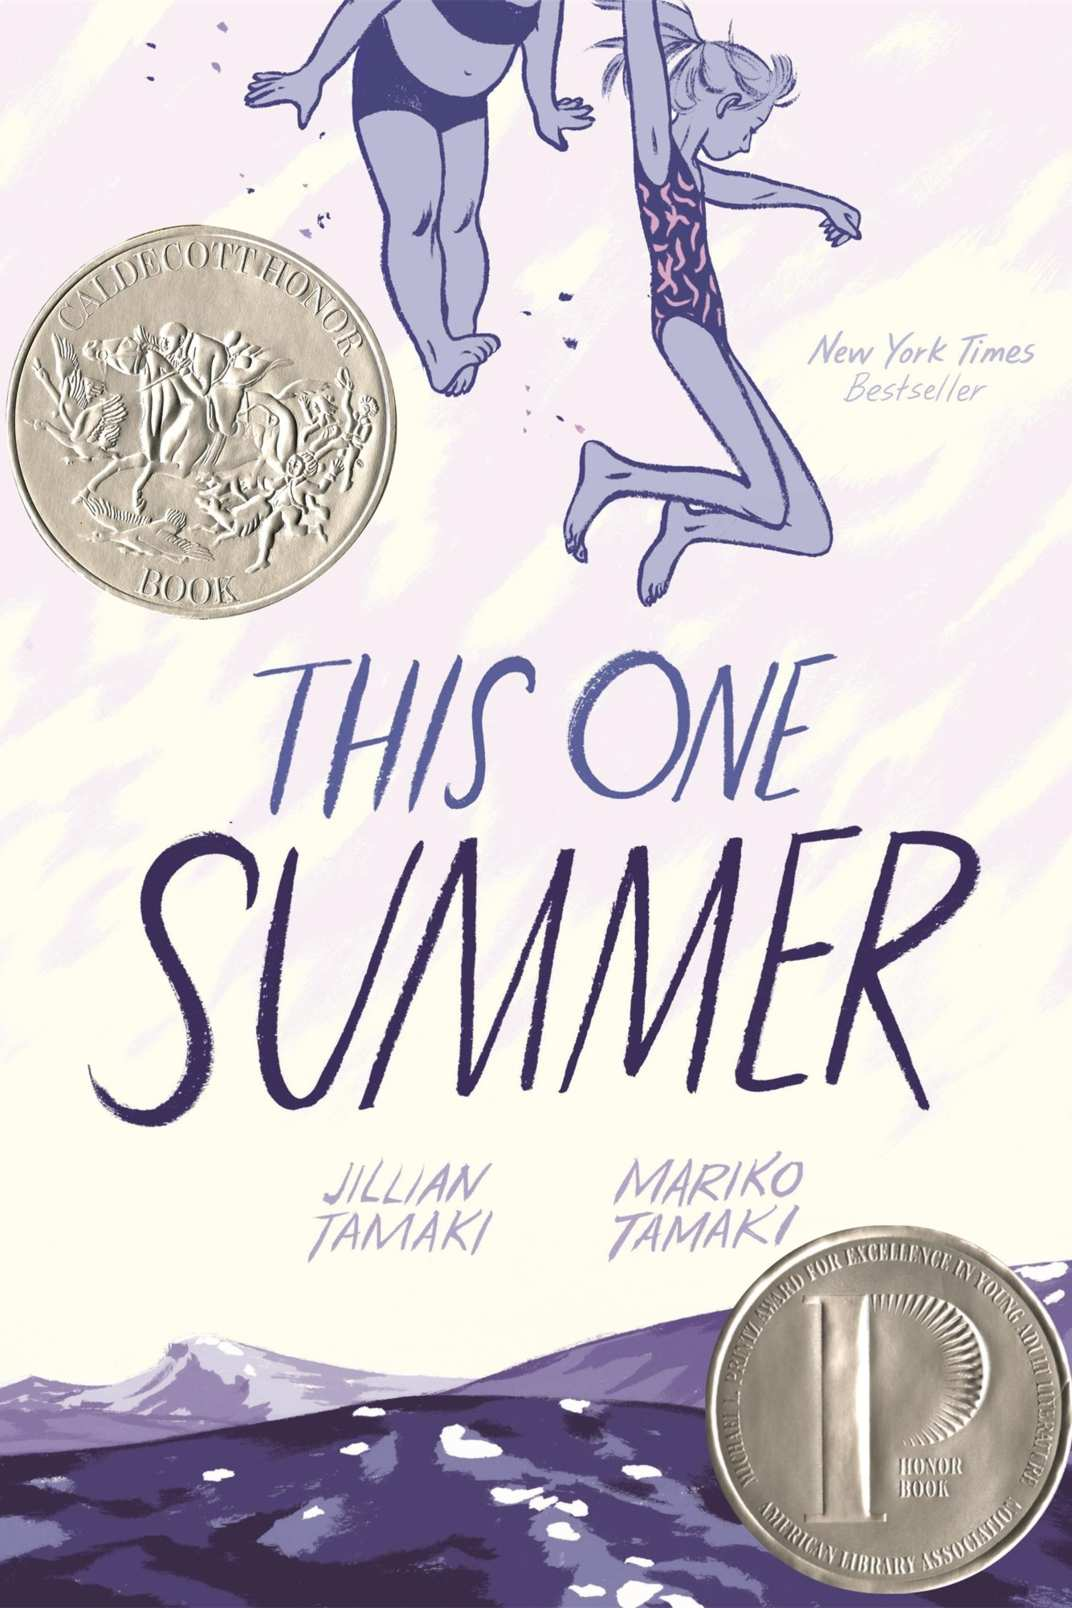 This One Summer, by Jillian Tamaki and Mariko Tamaki